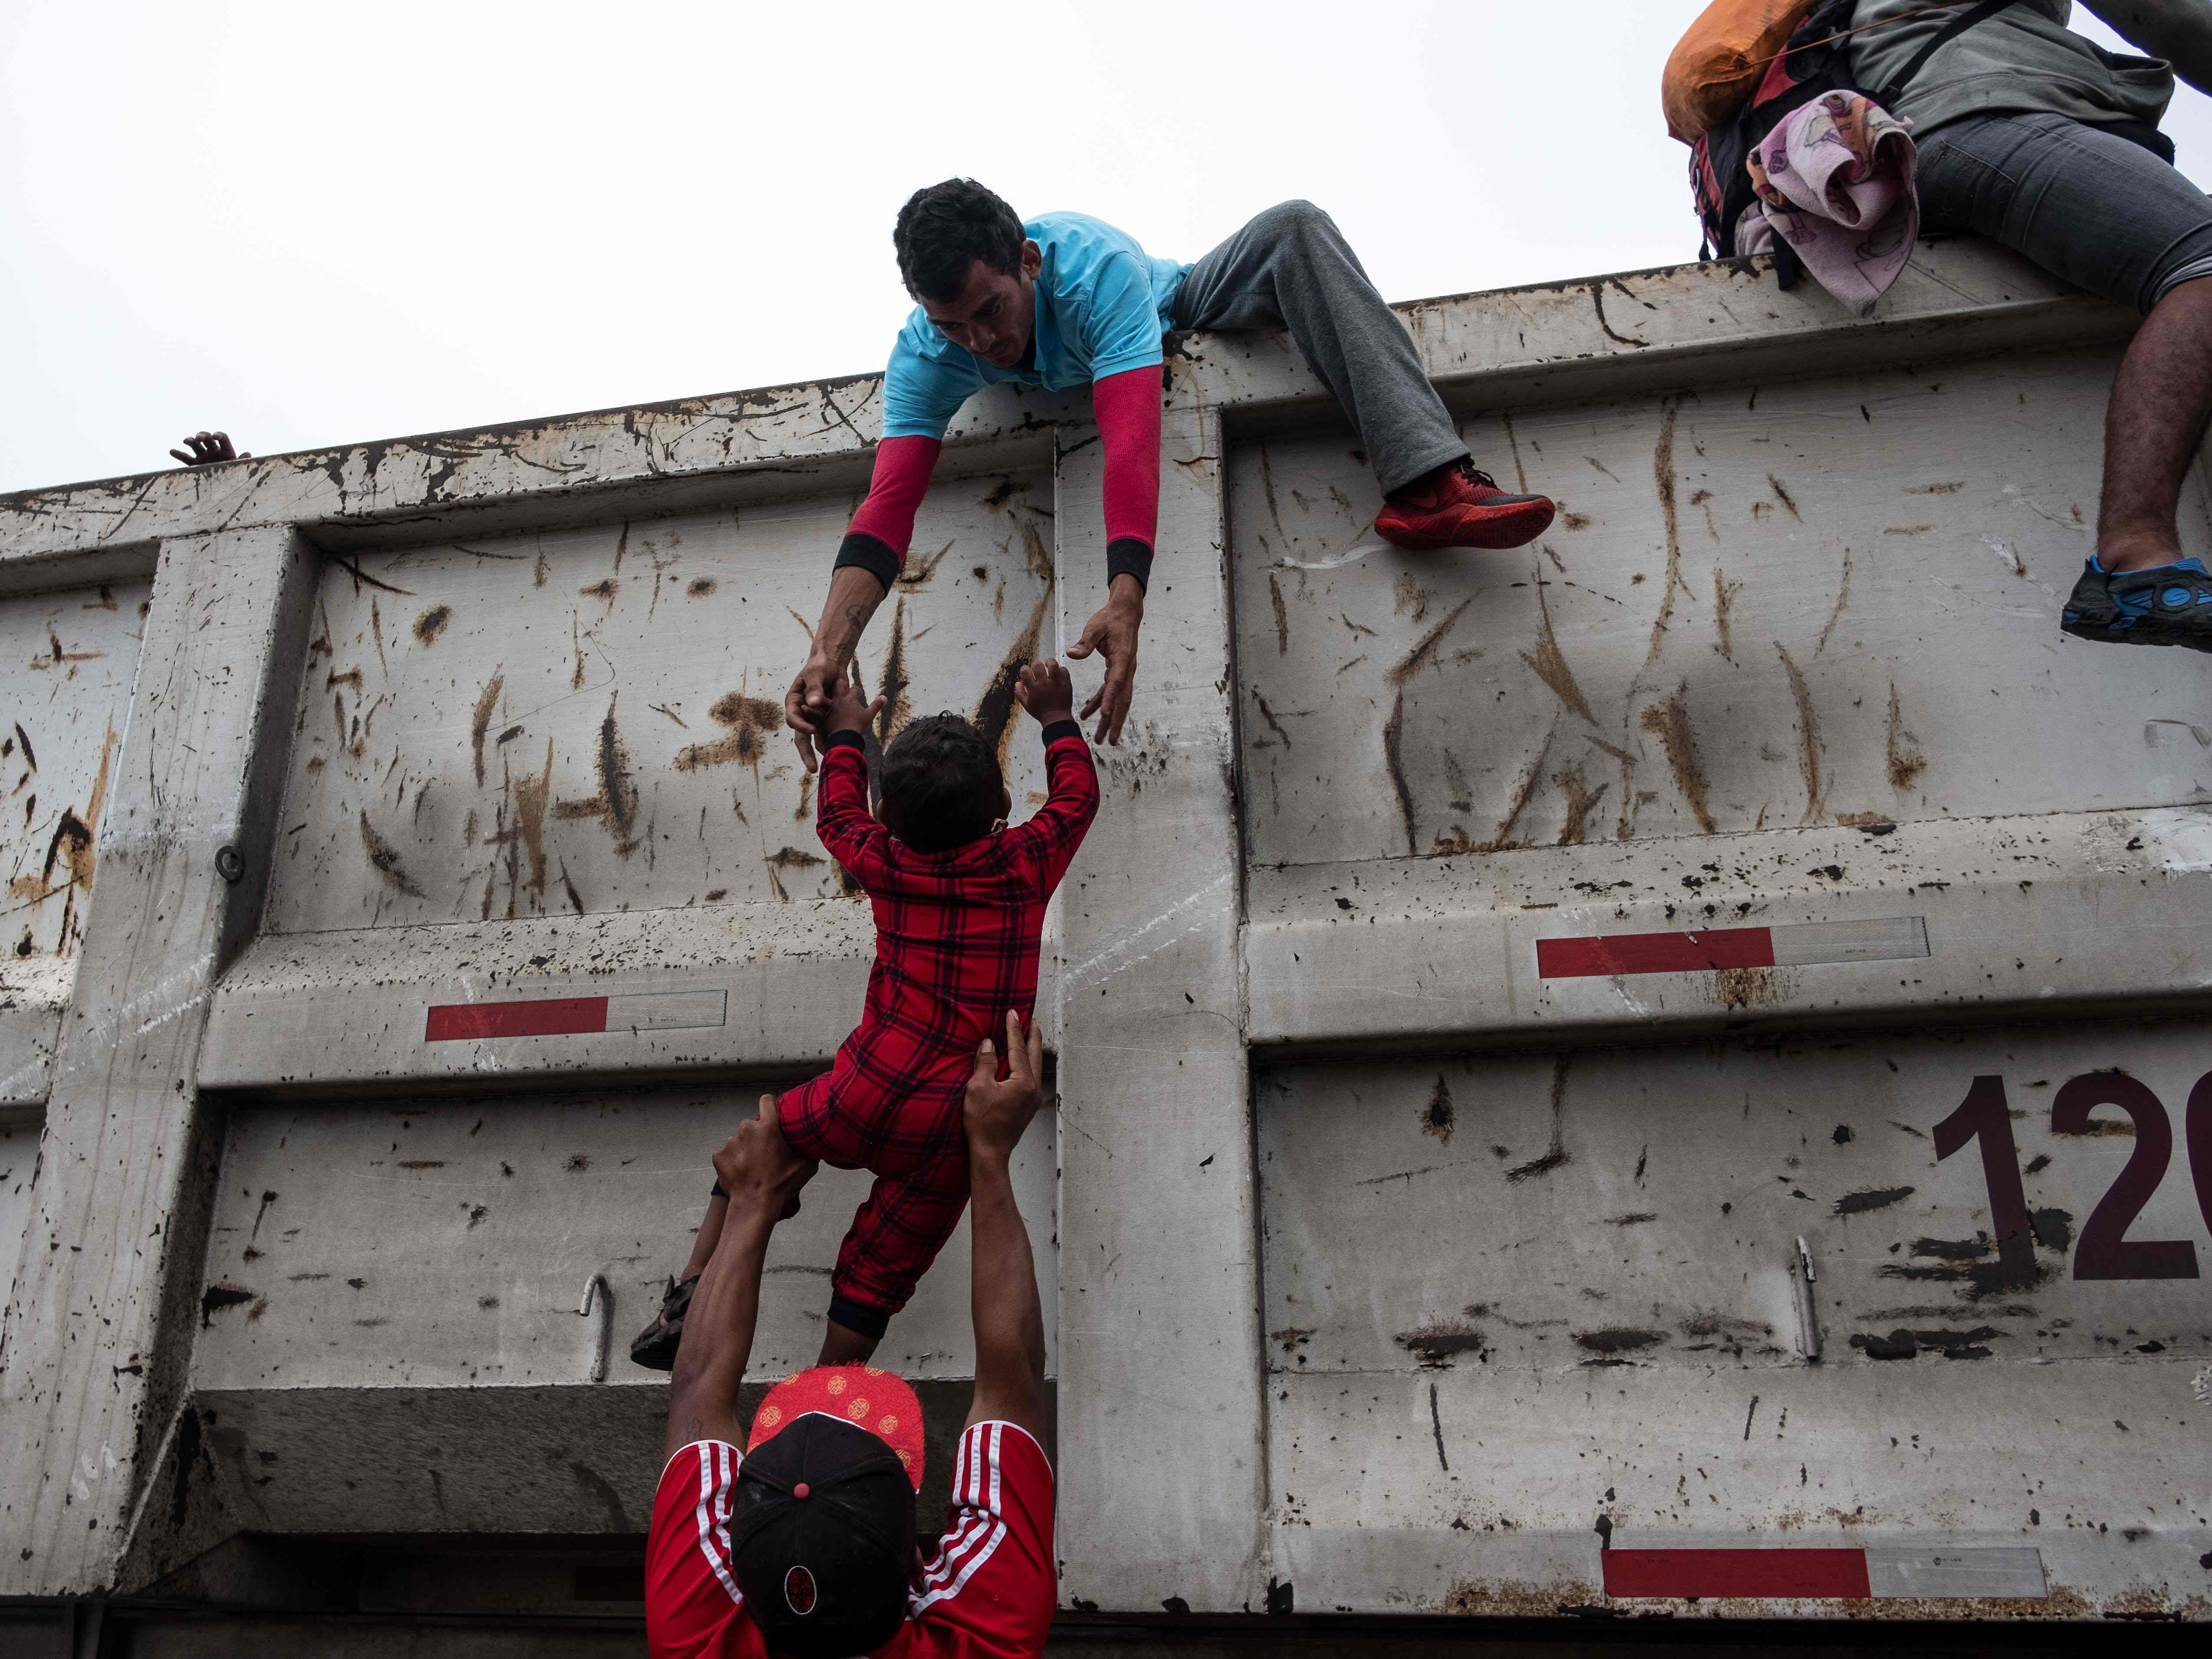 Migrants heading in a caravan to the U.S., help a child catch a ride on a truck on the road linking Sayula de Aleman and Isla, Veracruz state, Mexico, on Nov. 3, 2018.